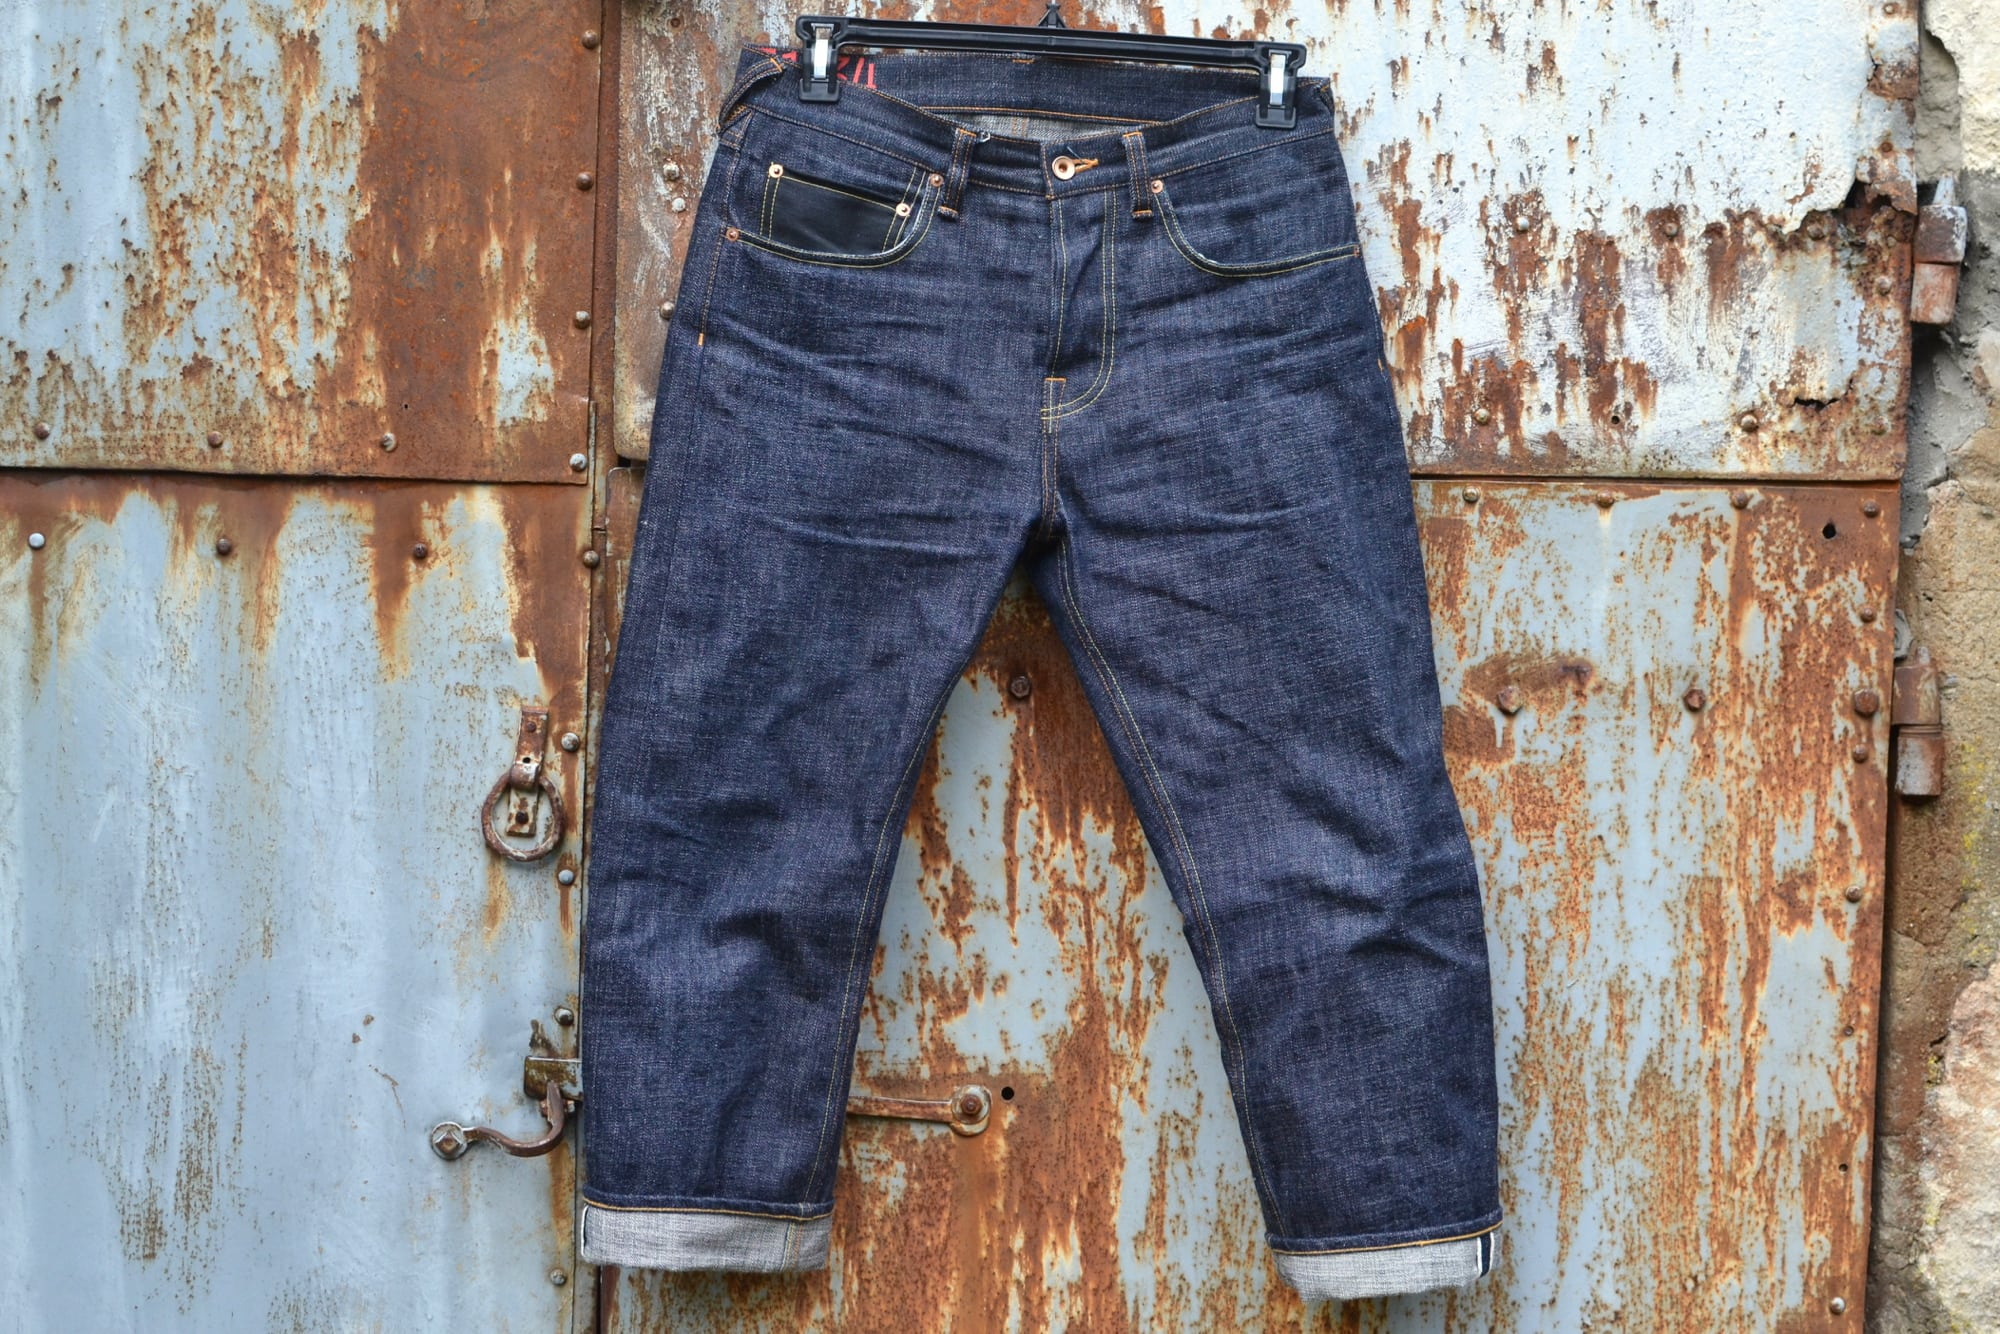 PHI DENIM PHI04 16oz jeans raw selvedge MADE IN JAPAN jeans Pocket made with kimono offcuts, Tsugihagi つぎはぎ